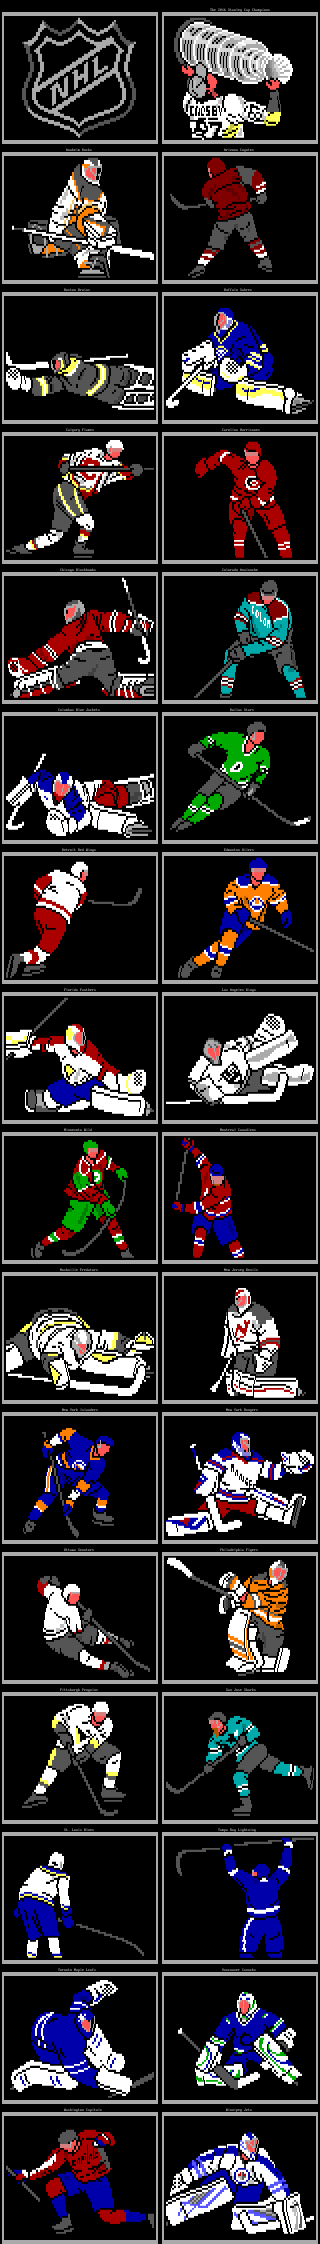 NHL Teams by Whazzit